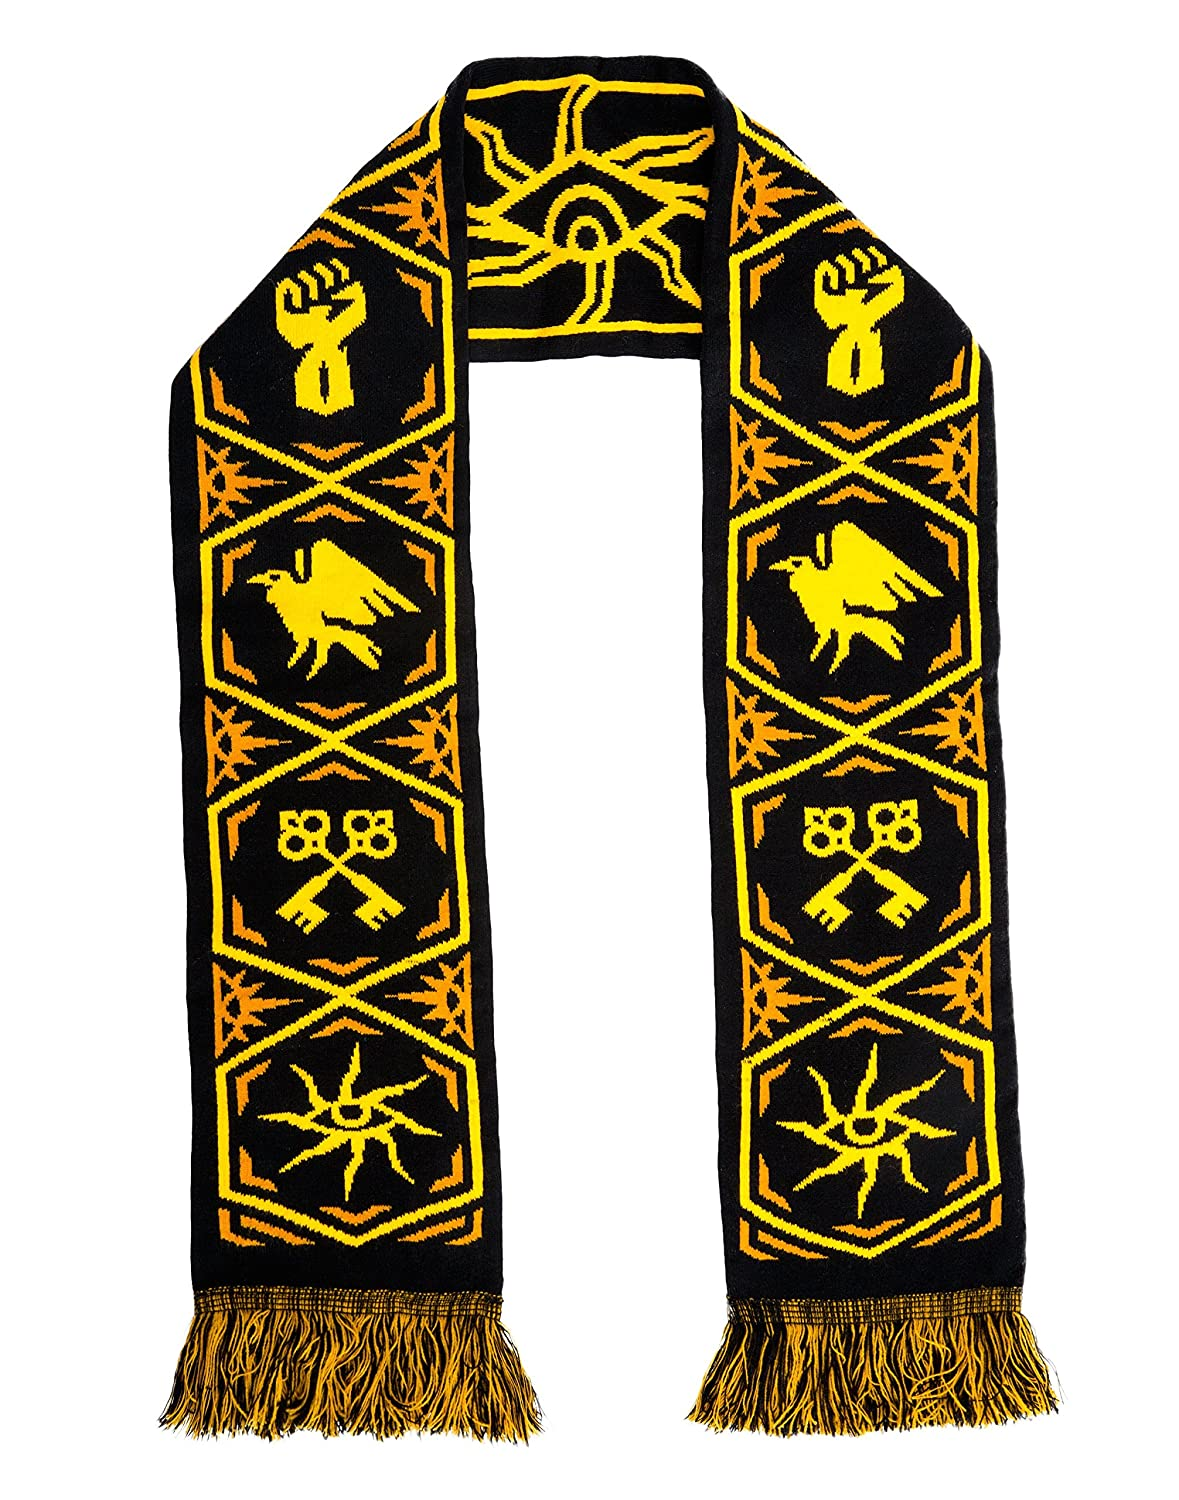 Sanshee Official Dragon Age: Inquisition 68 Inquisition Scarf 750958720030